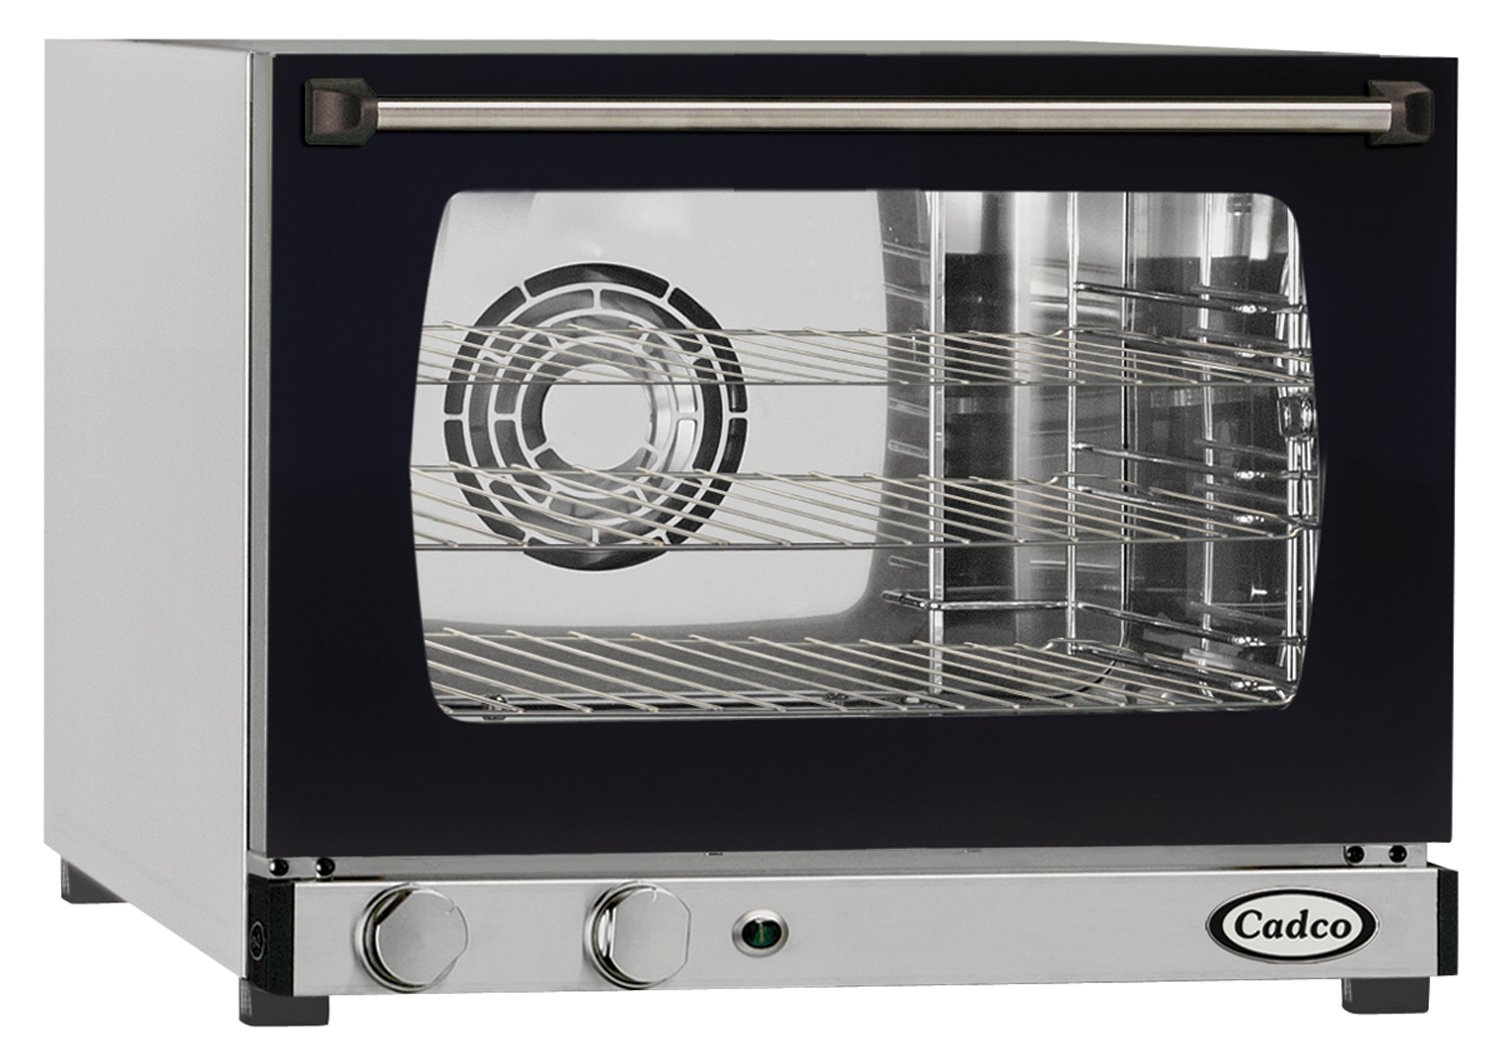 Cadco XAF-103 Quarter Size Convection Oven with Manual Controls, 120-Volt/1450-Watt, Stainless/Black